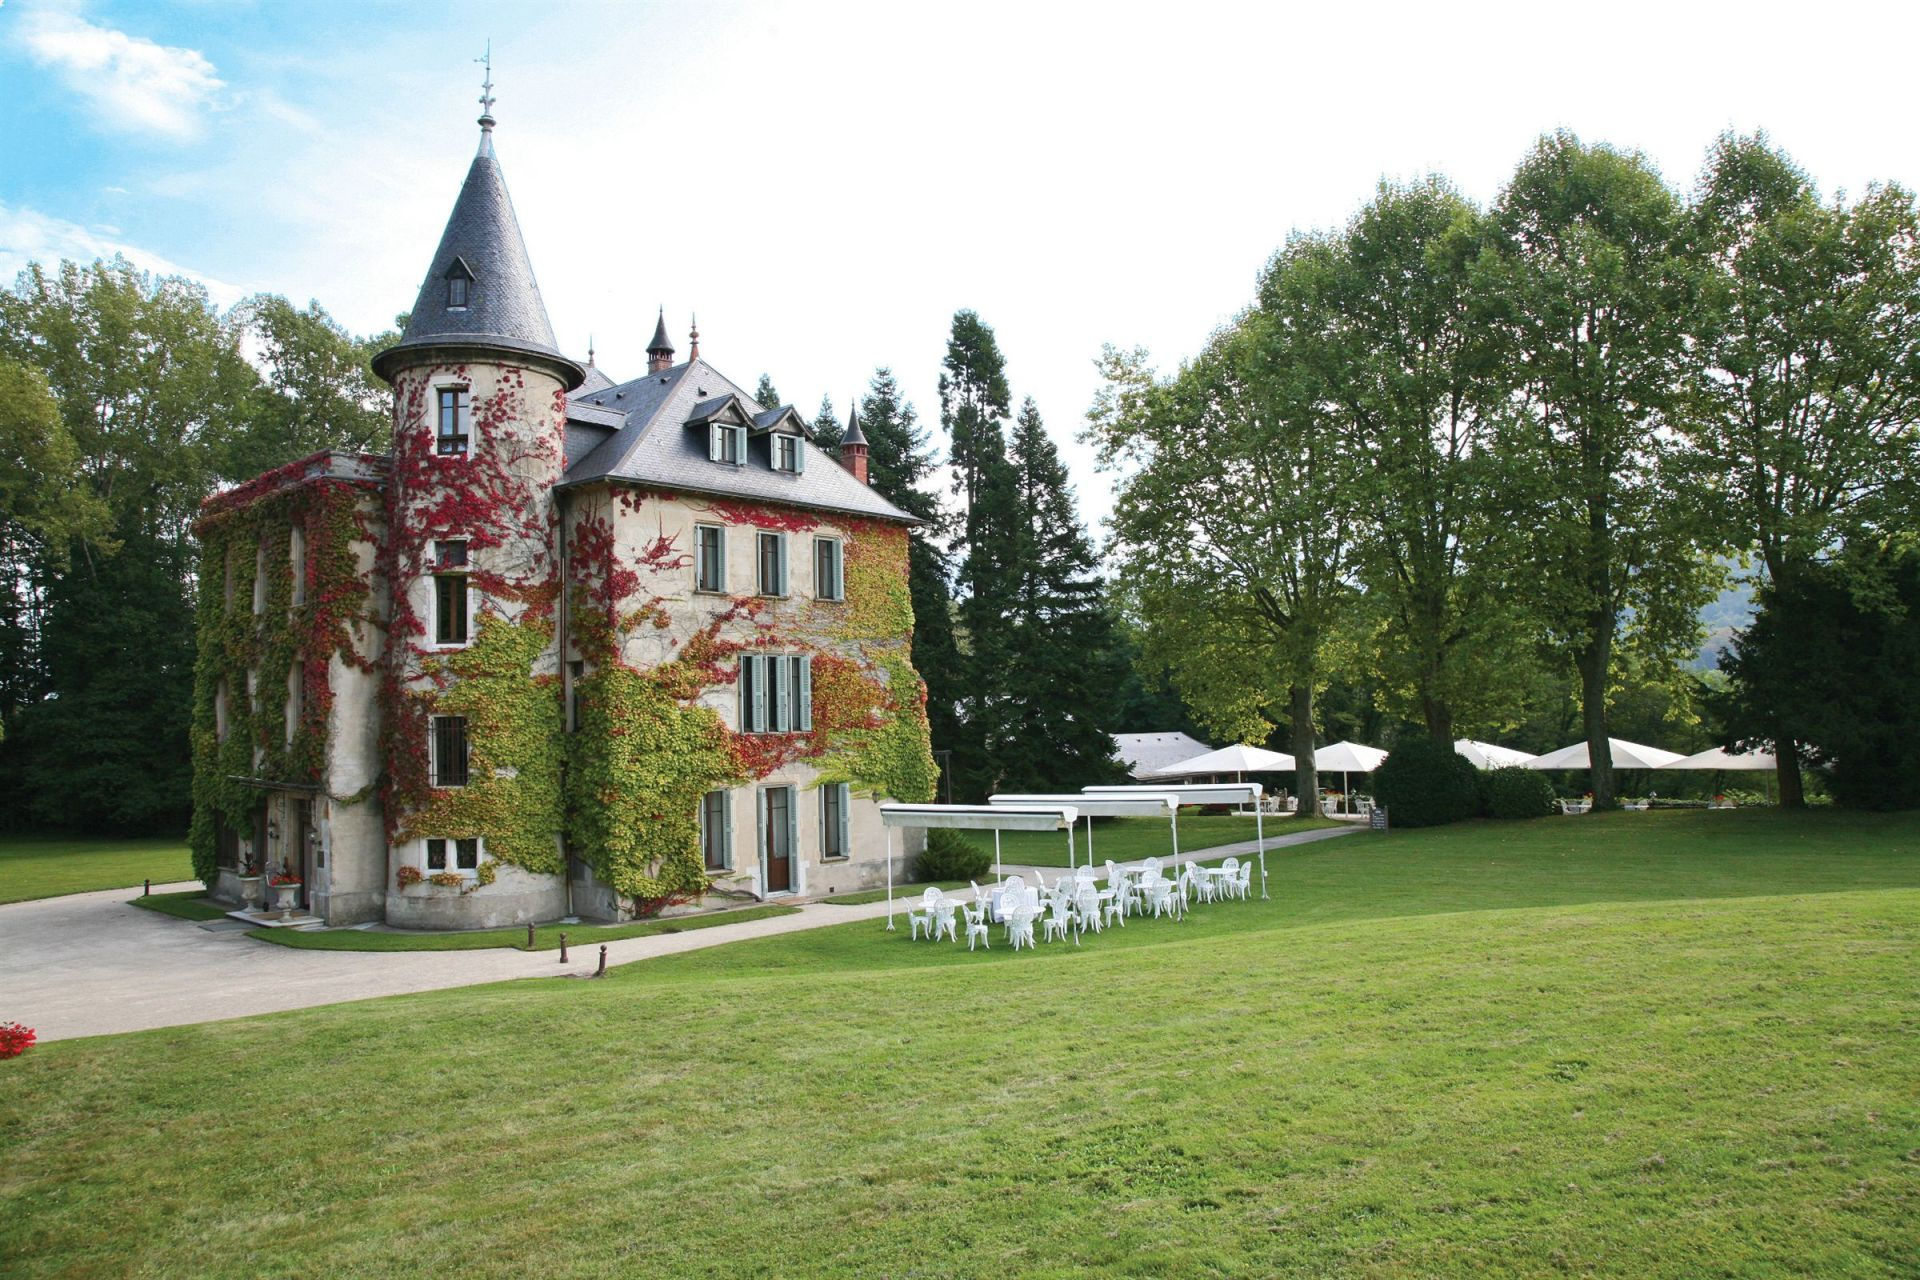 castle 11 rooms for sale on CHAMBERY (73000) - Luxury and prestigious real estate France Monaco